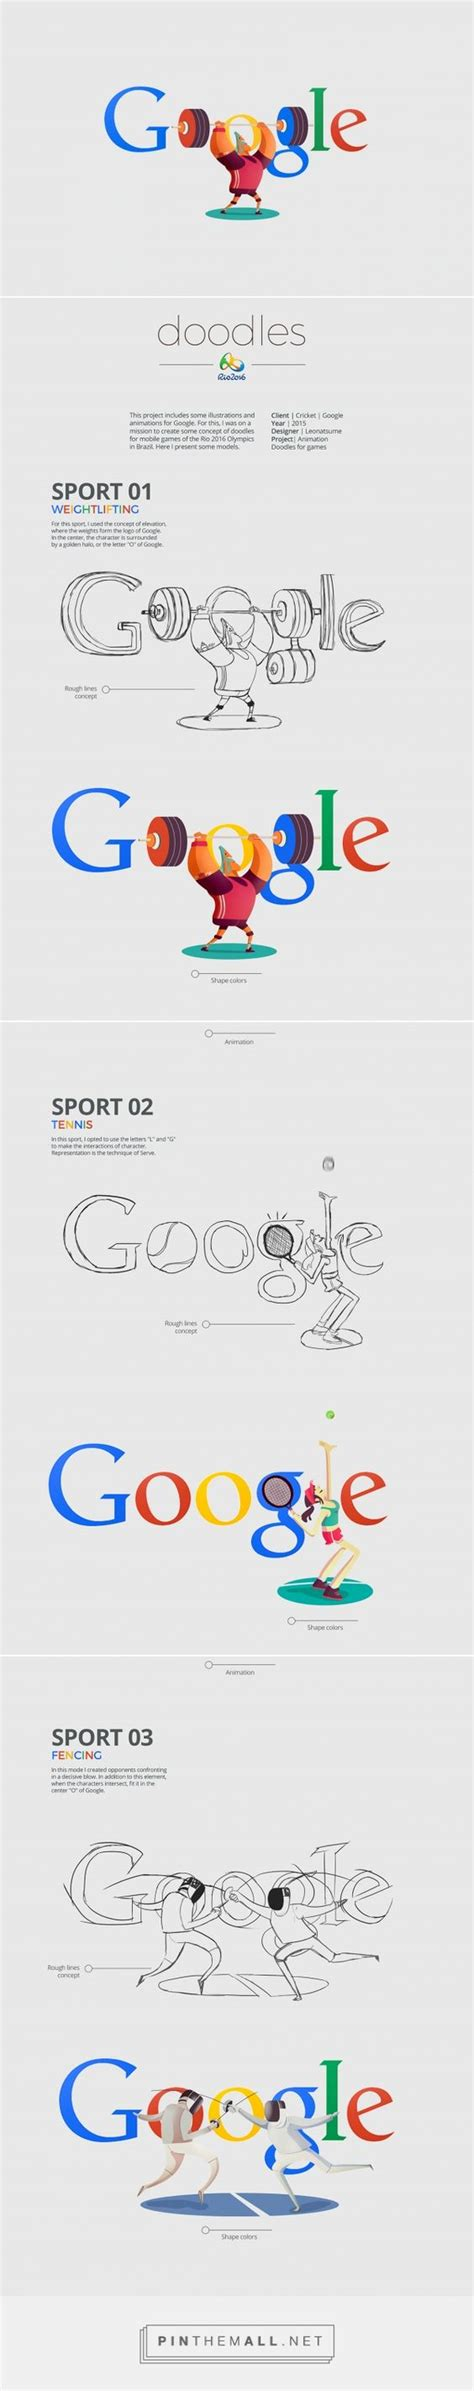 doodle 4 olympics doodles olympic and on